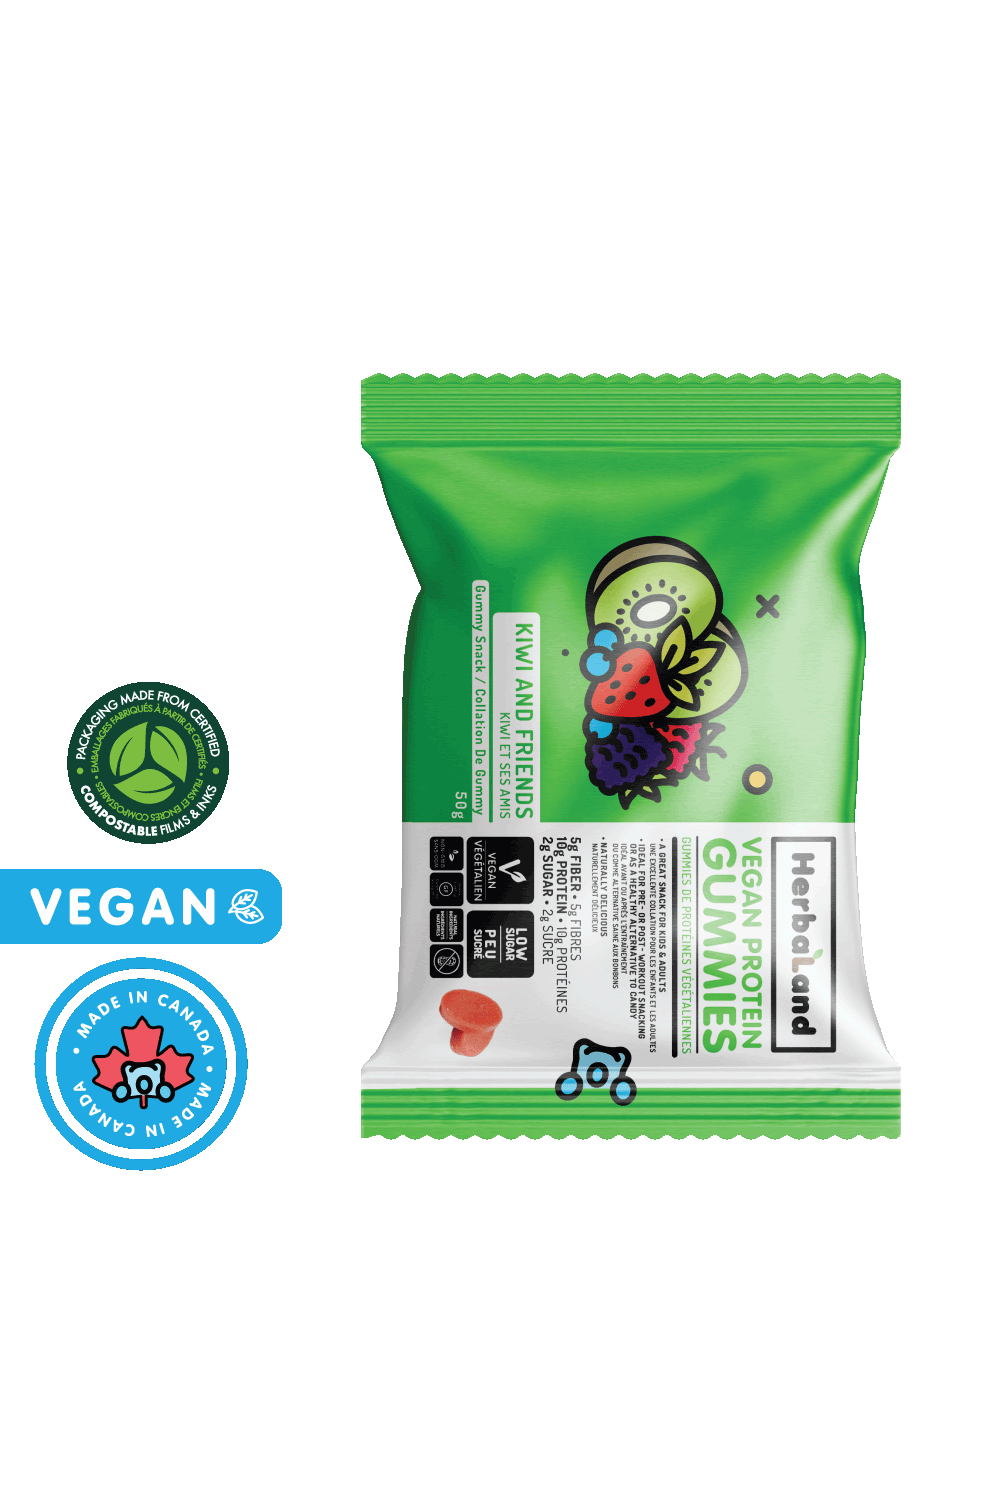 Herbaland Vegan Protein Gummies Kiwi and Friends' 1 packet